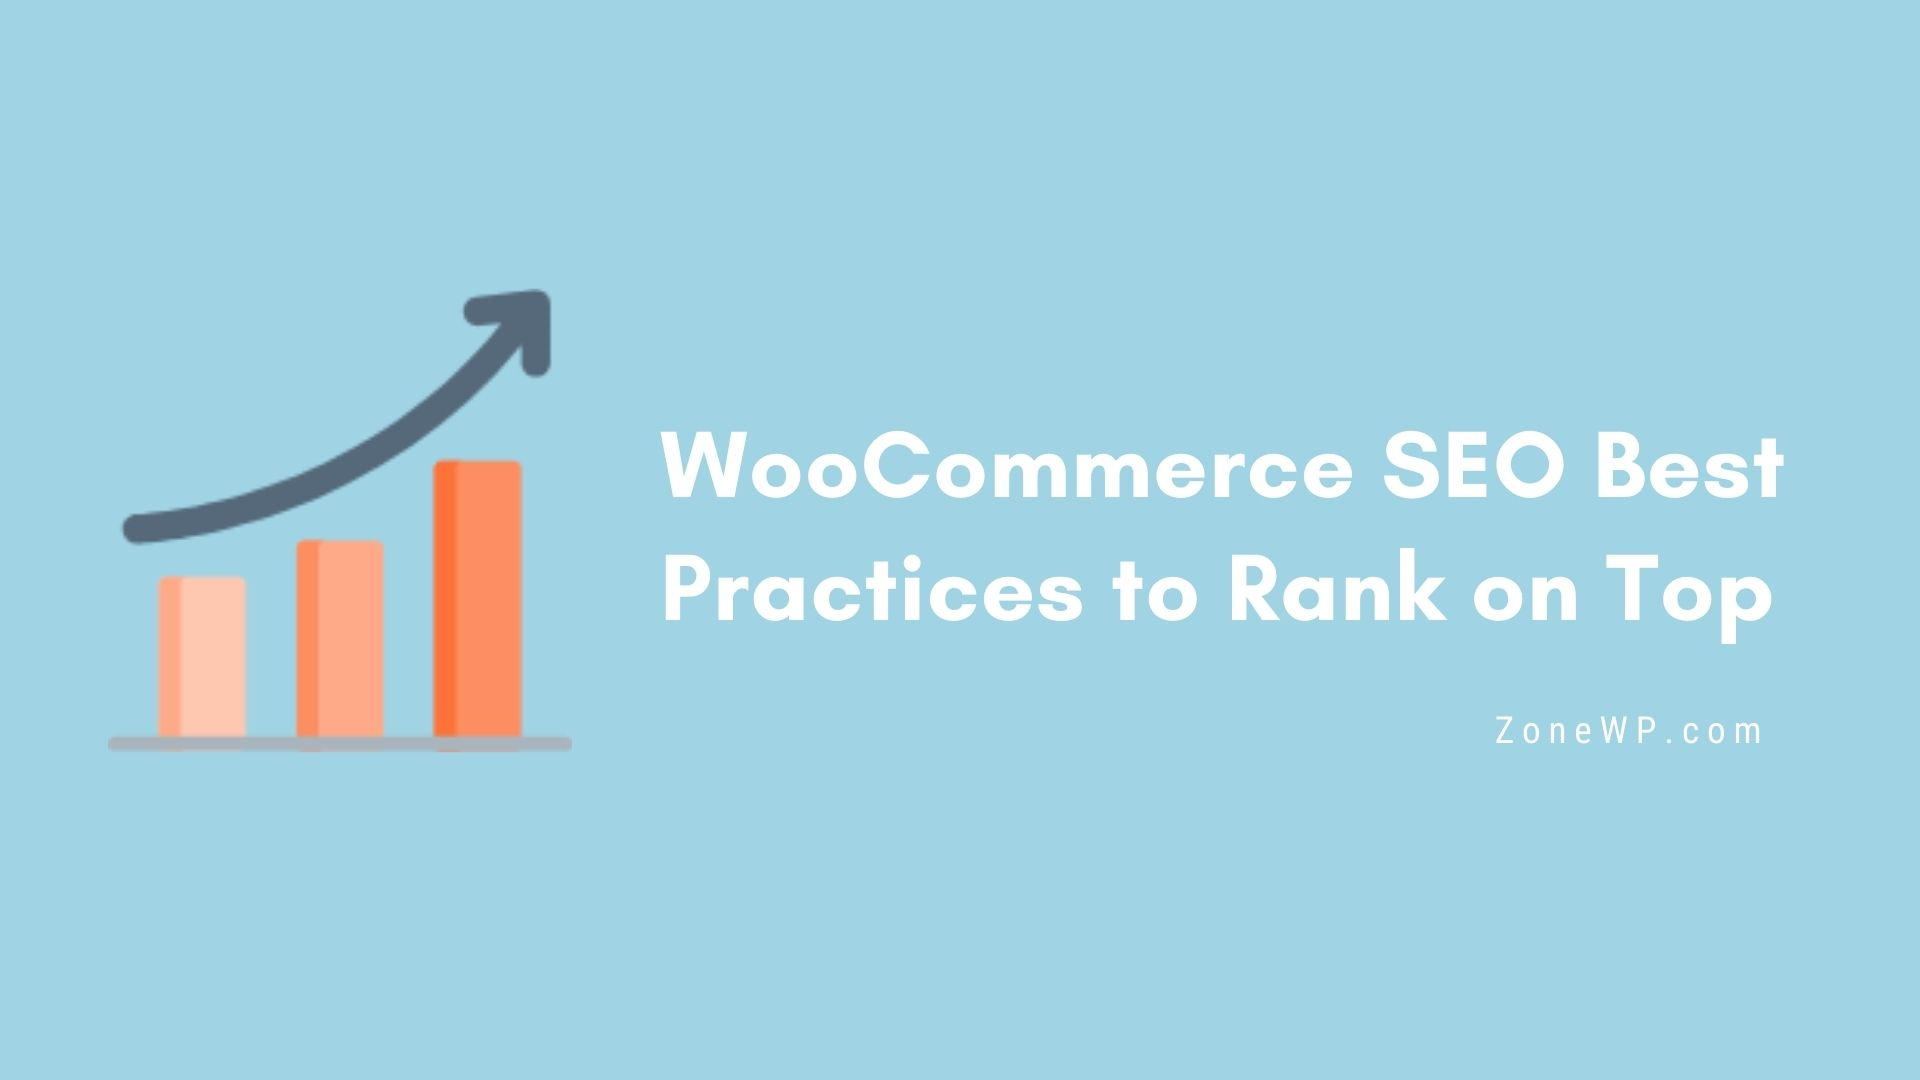 WooCommerce SEO Best Practices to Rank on Top